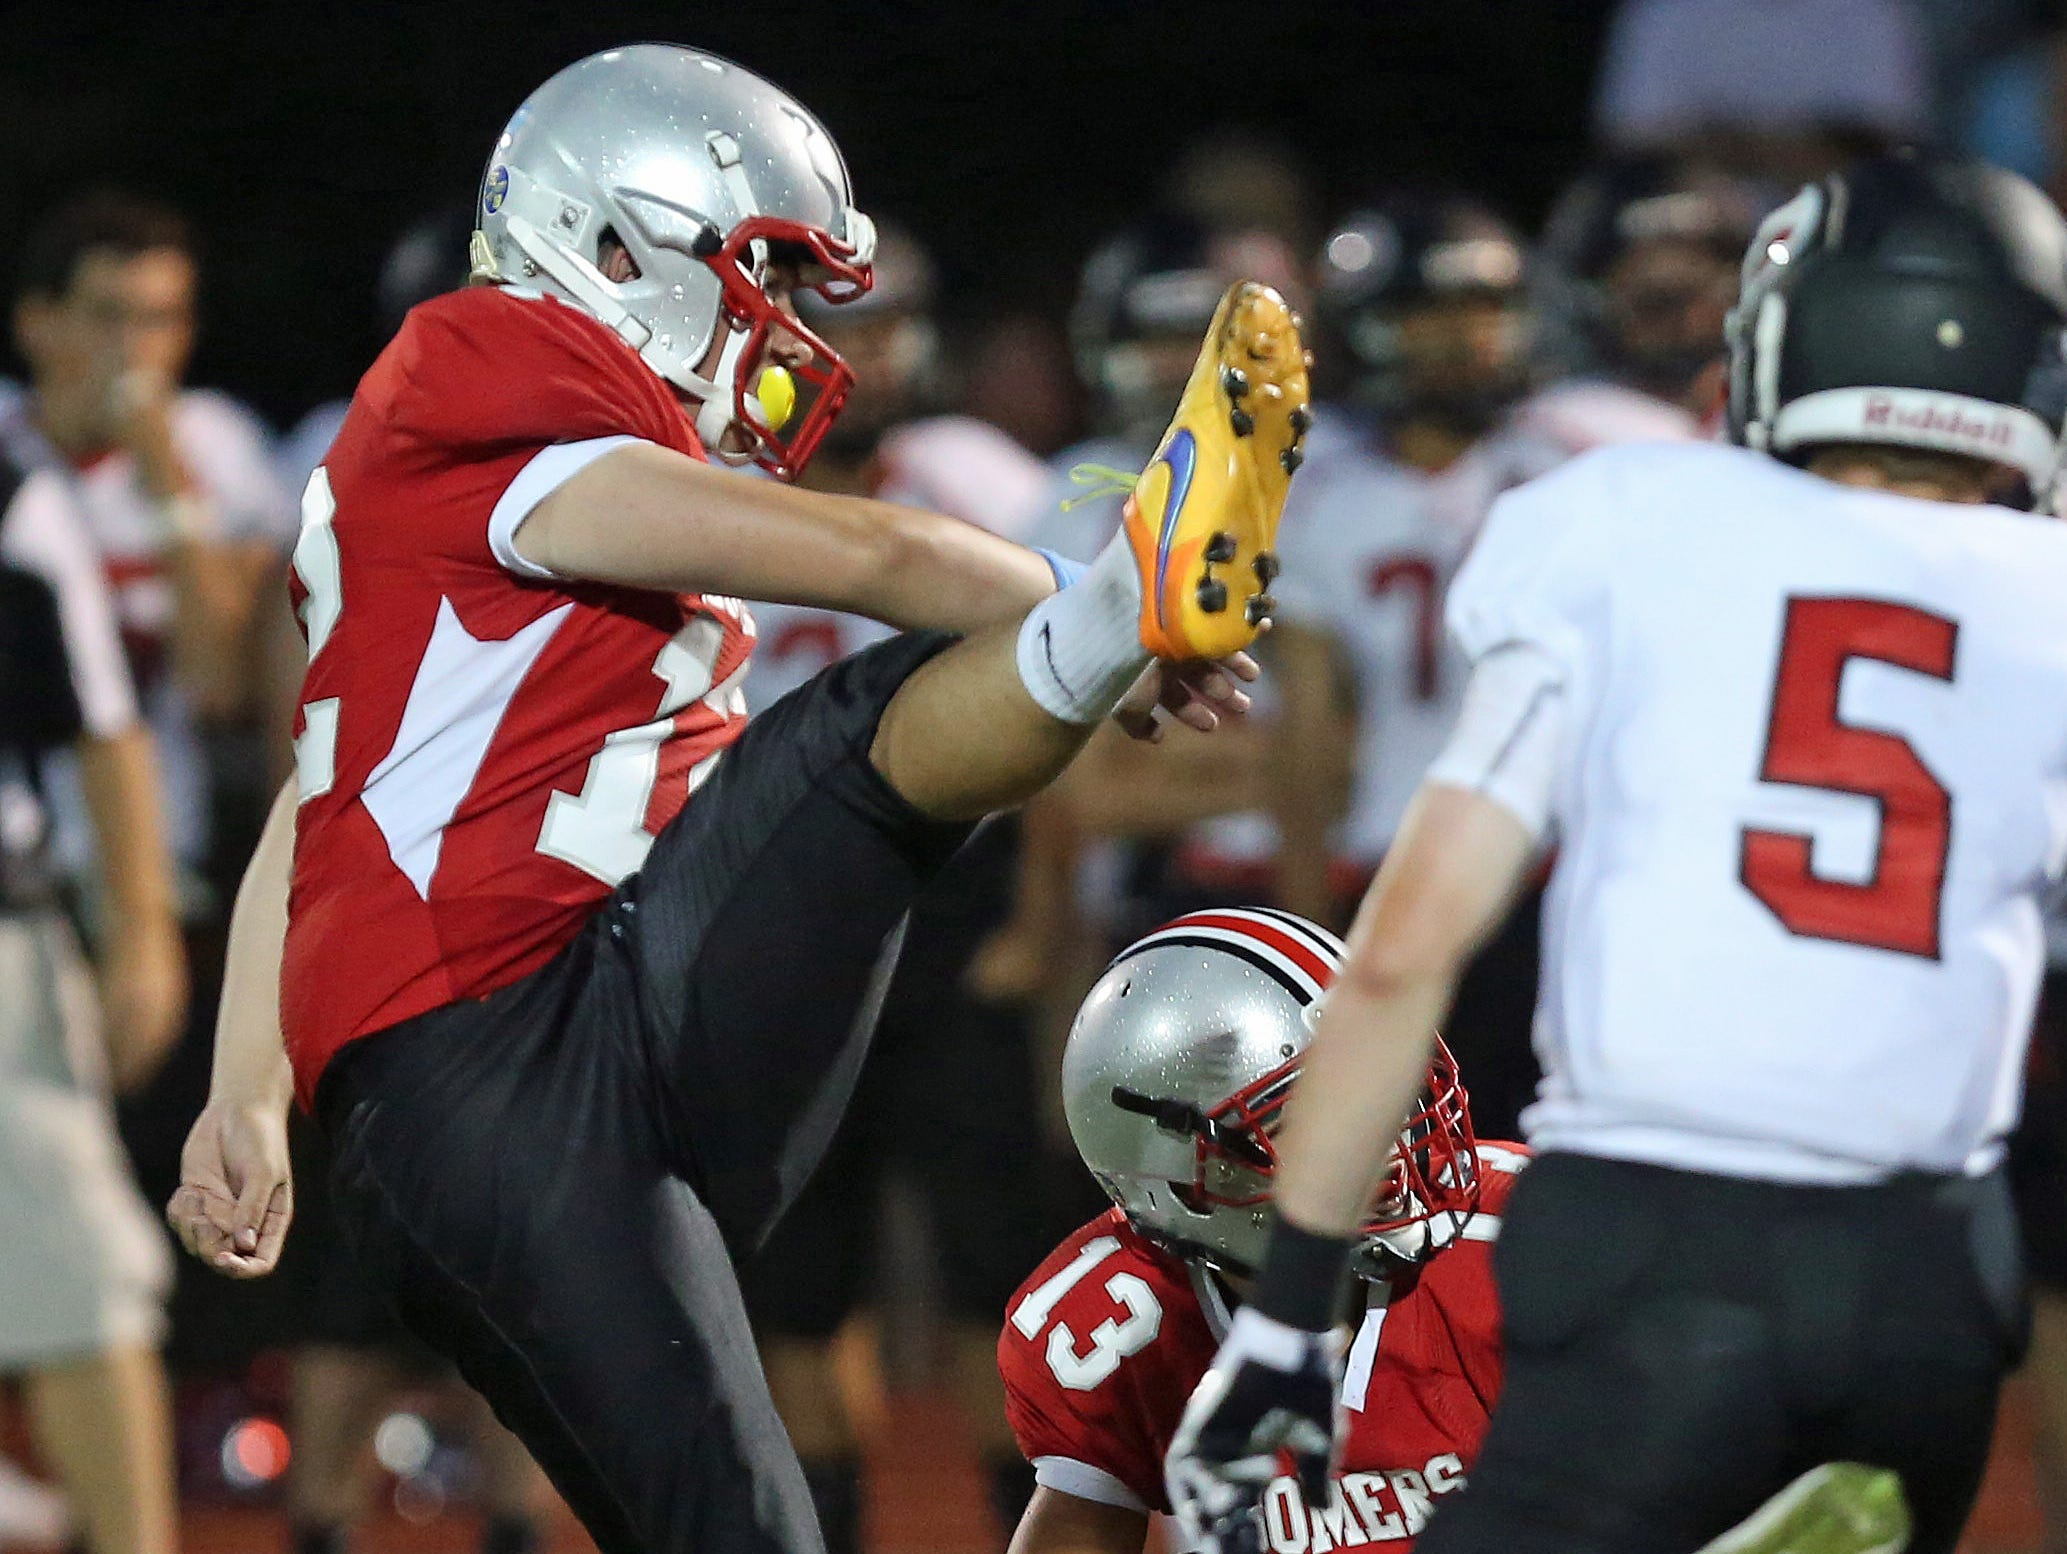 Somers' Eric Silvester (12) connects on a first half field goal against Rye, during football action at Somers High School Sept. 4, 2015